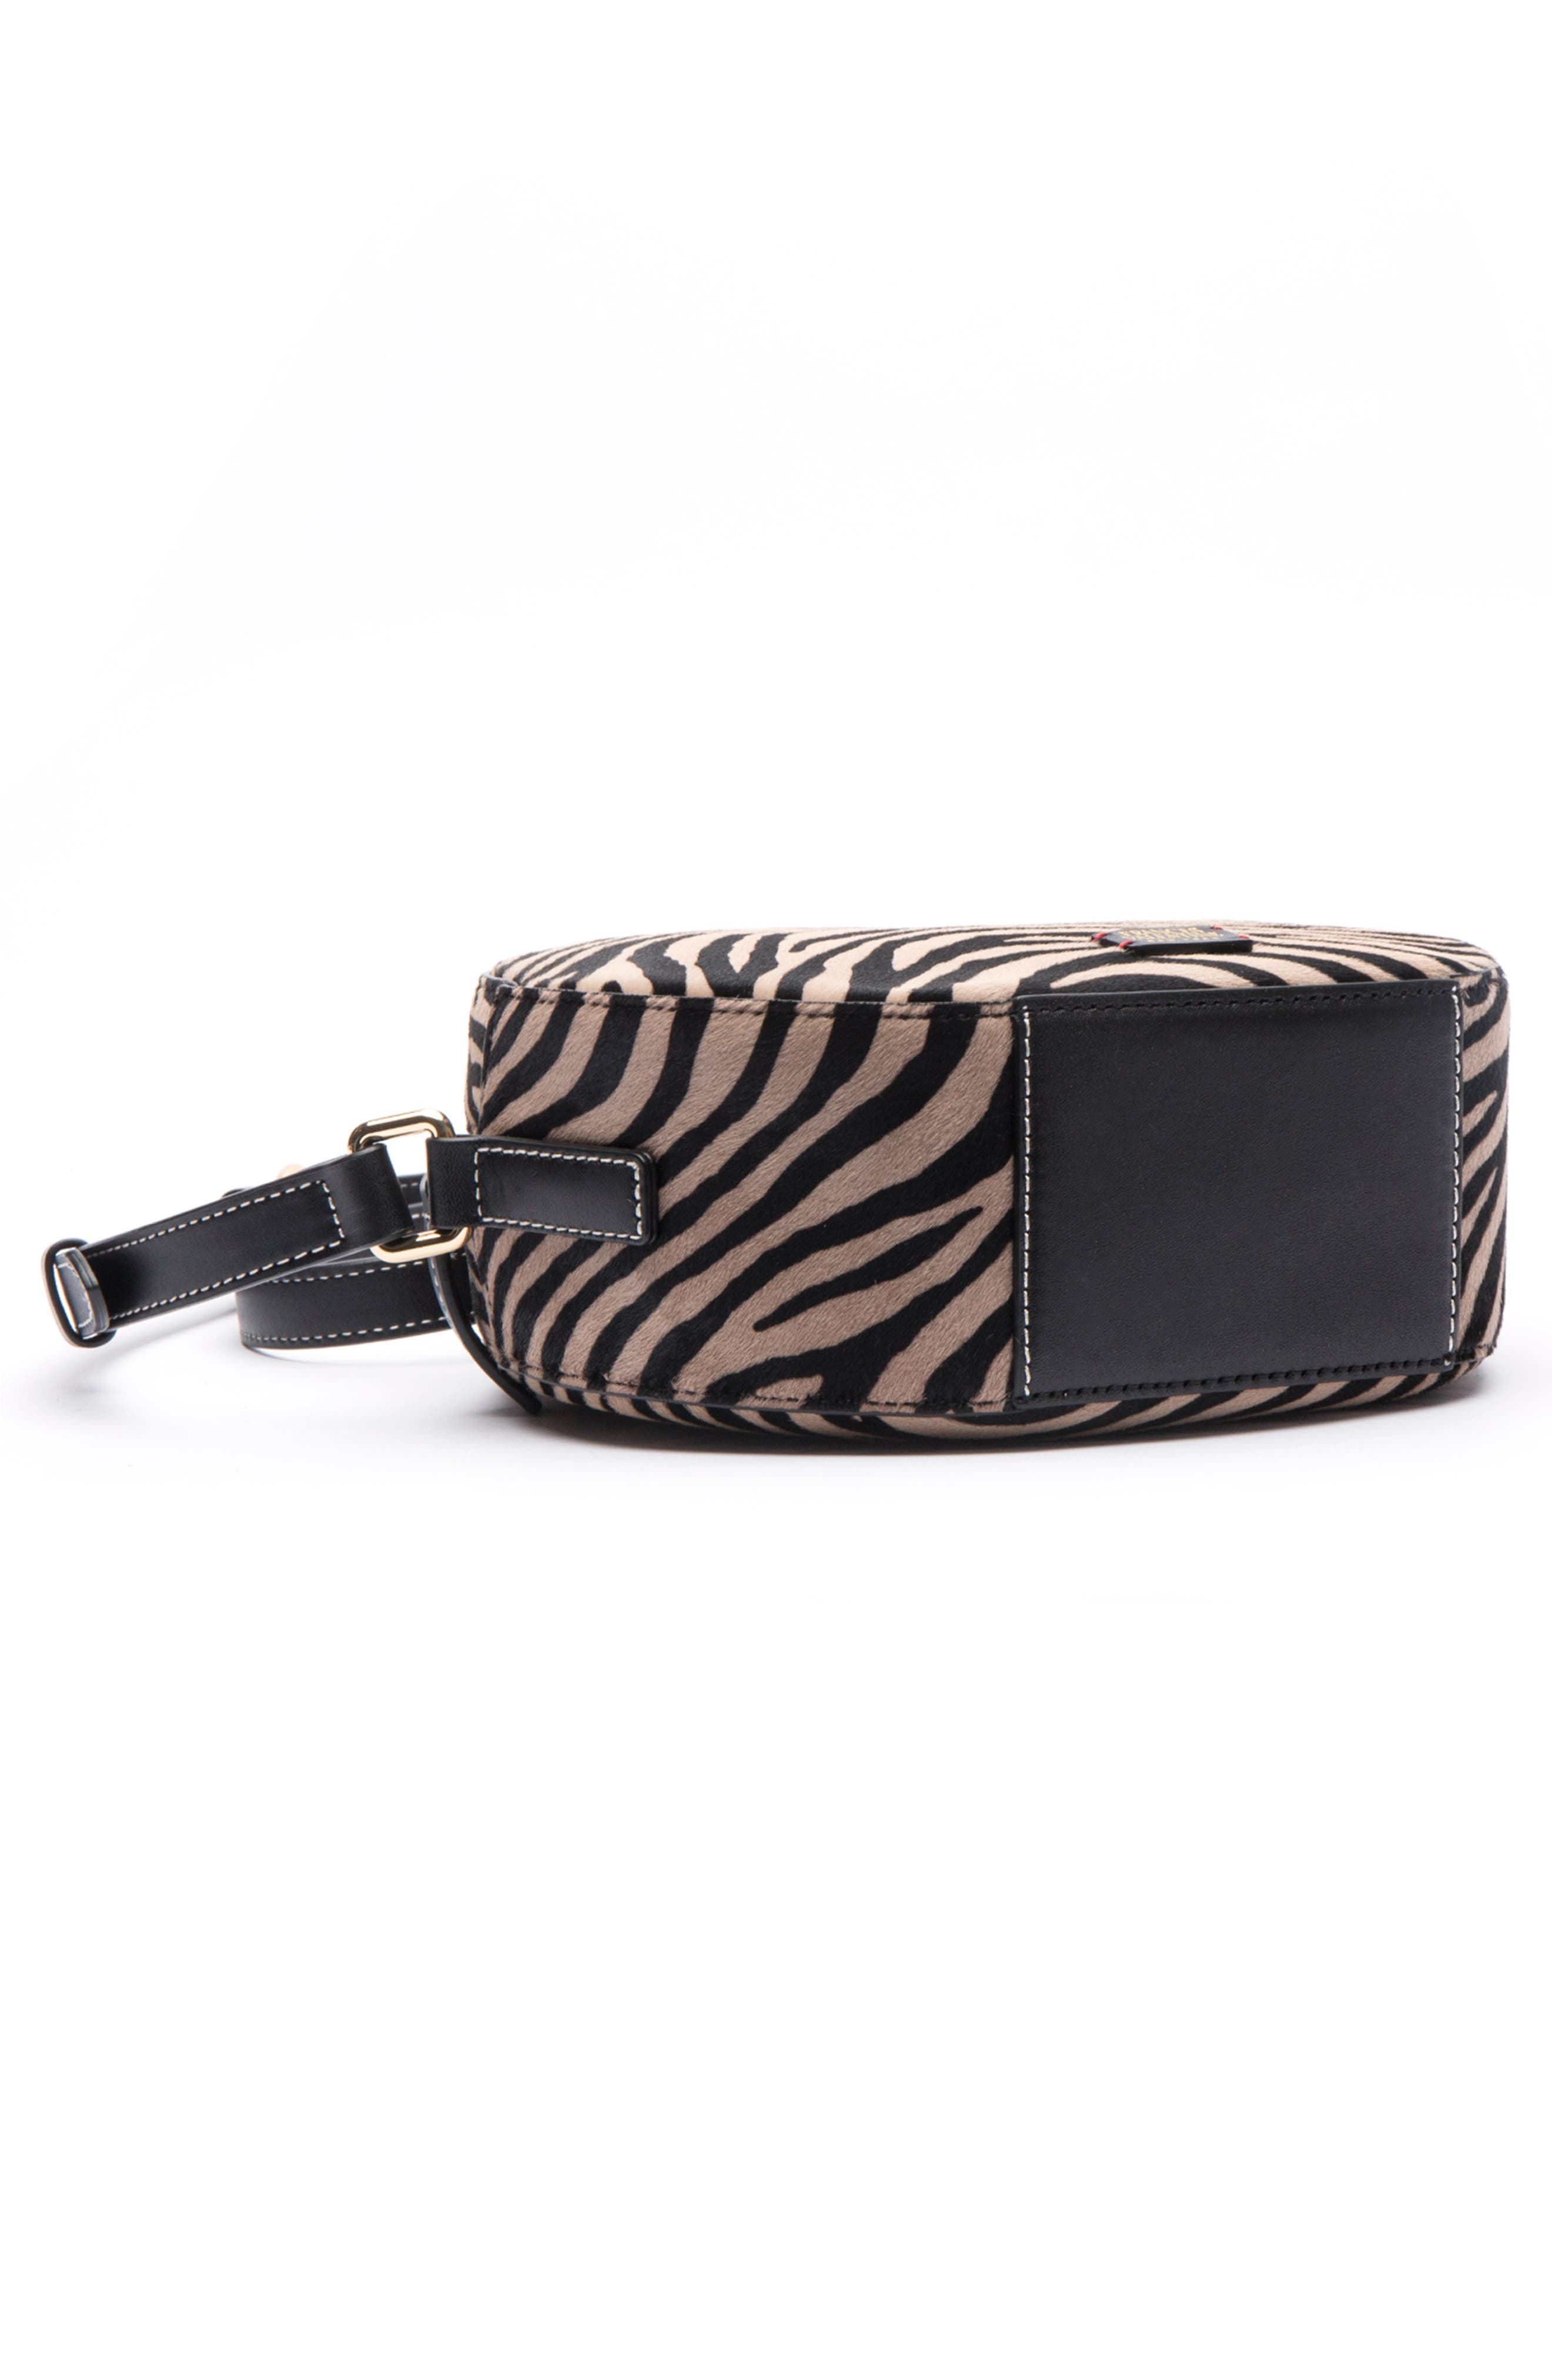 Frances Valetine Lulu Genuine Calf Hair Round Crossbody Bag,                             Alternate thumbnail 3, color,                             ZEBRA